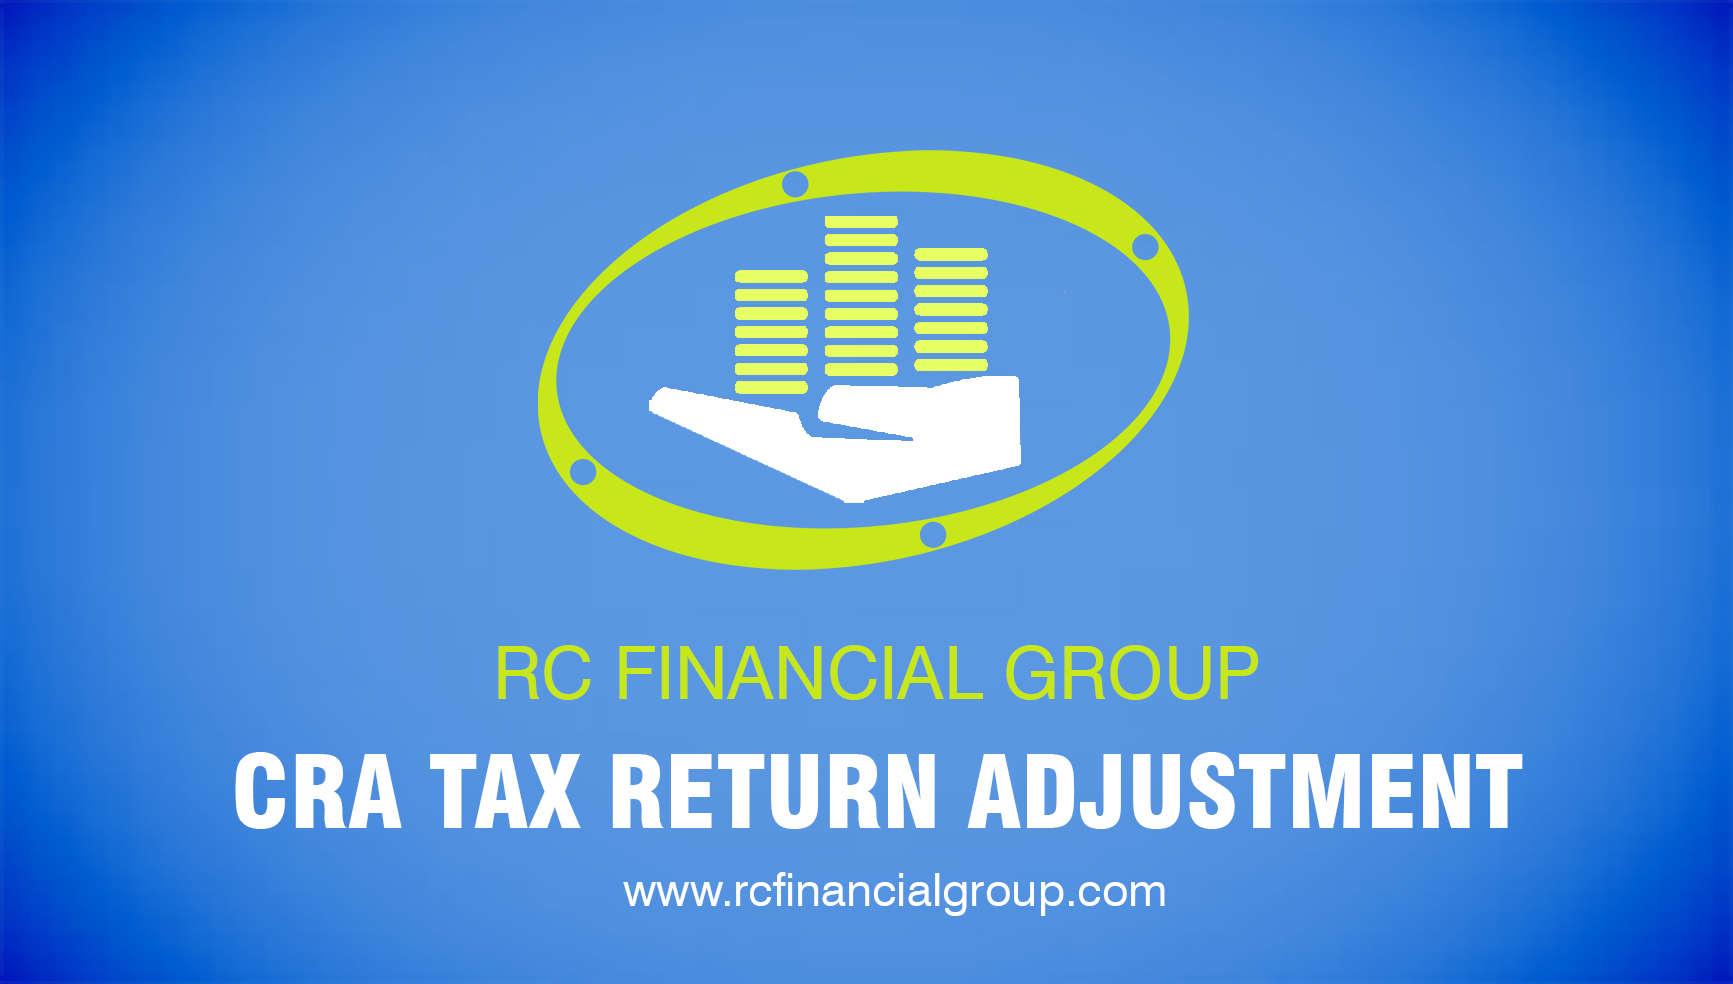 Cra Tax Return Adjustment